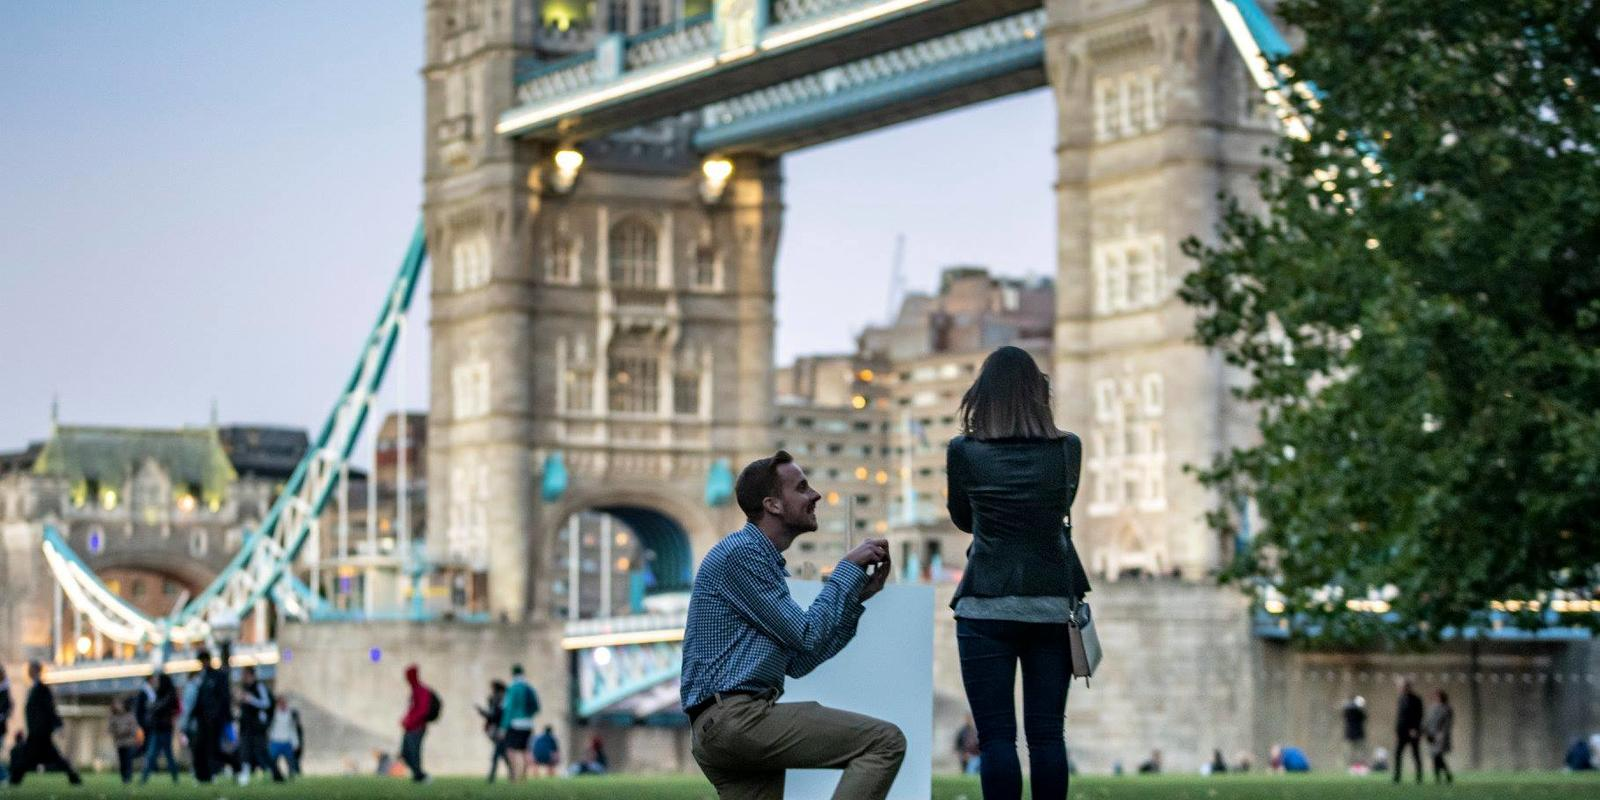 Nick proposing in London